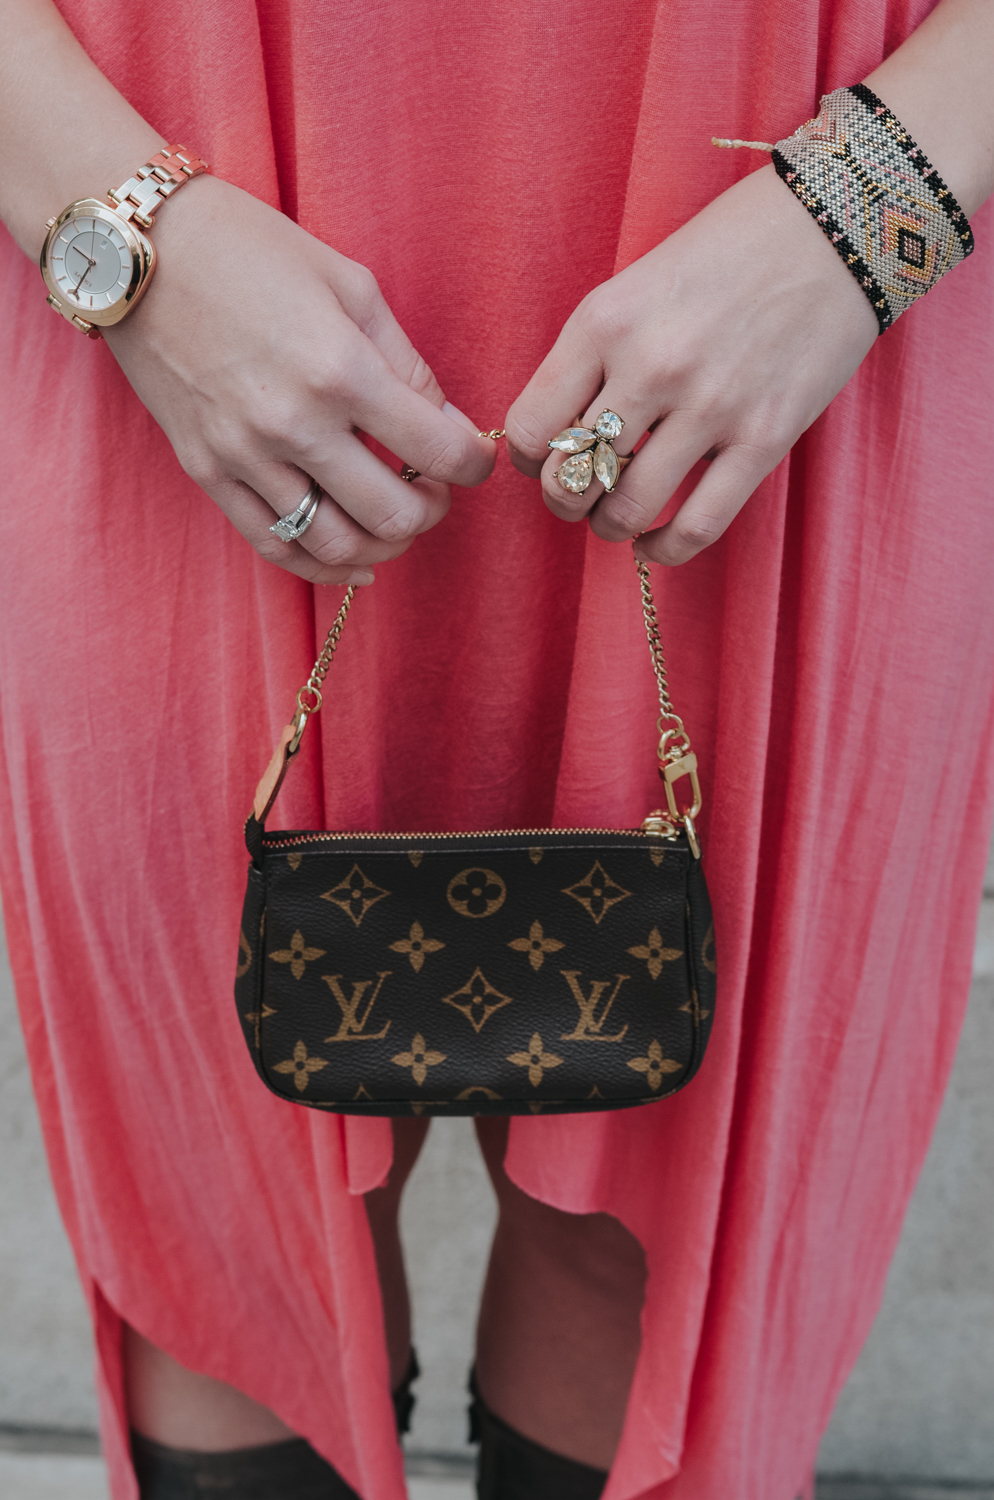 Accessories: Louis Vuitton Pochette Accessoire cloth handbag, Cocktail Ring from @7charmingsister, Wing Ding Cuff Bracelet from @KutulaKiss, Coachella Rose Tone Watch from @EscapeWatches